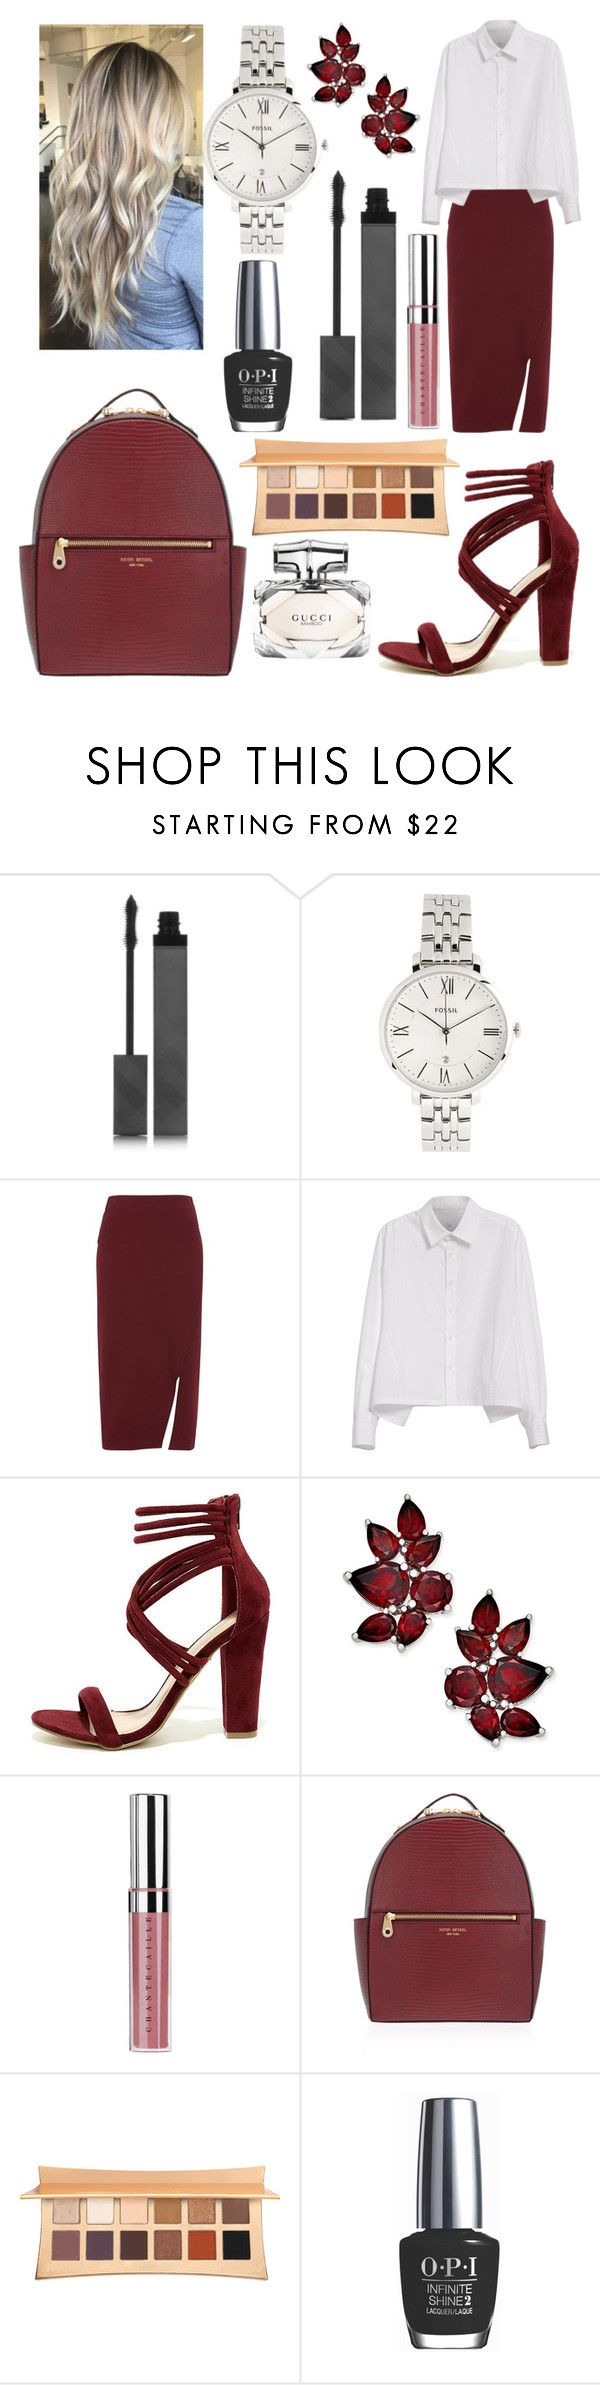 """💃🏻"" by dilya-kadyrova ❤ liked on Polyvore featuring Burberry, FOSSIL, Whistles, Y's by Yohji Yamamoto, Shoe Republic LA, Chantecaille, Henri Bendel, Illamasqua, OPI and Gucci"